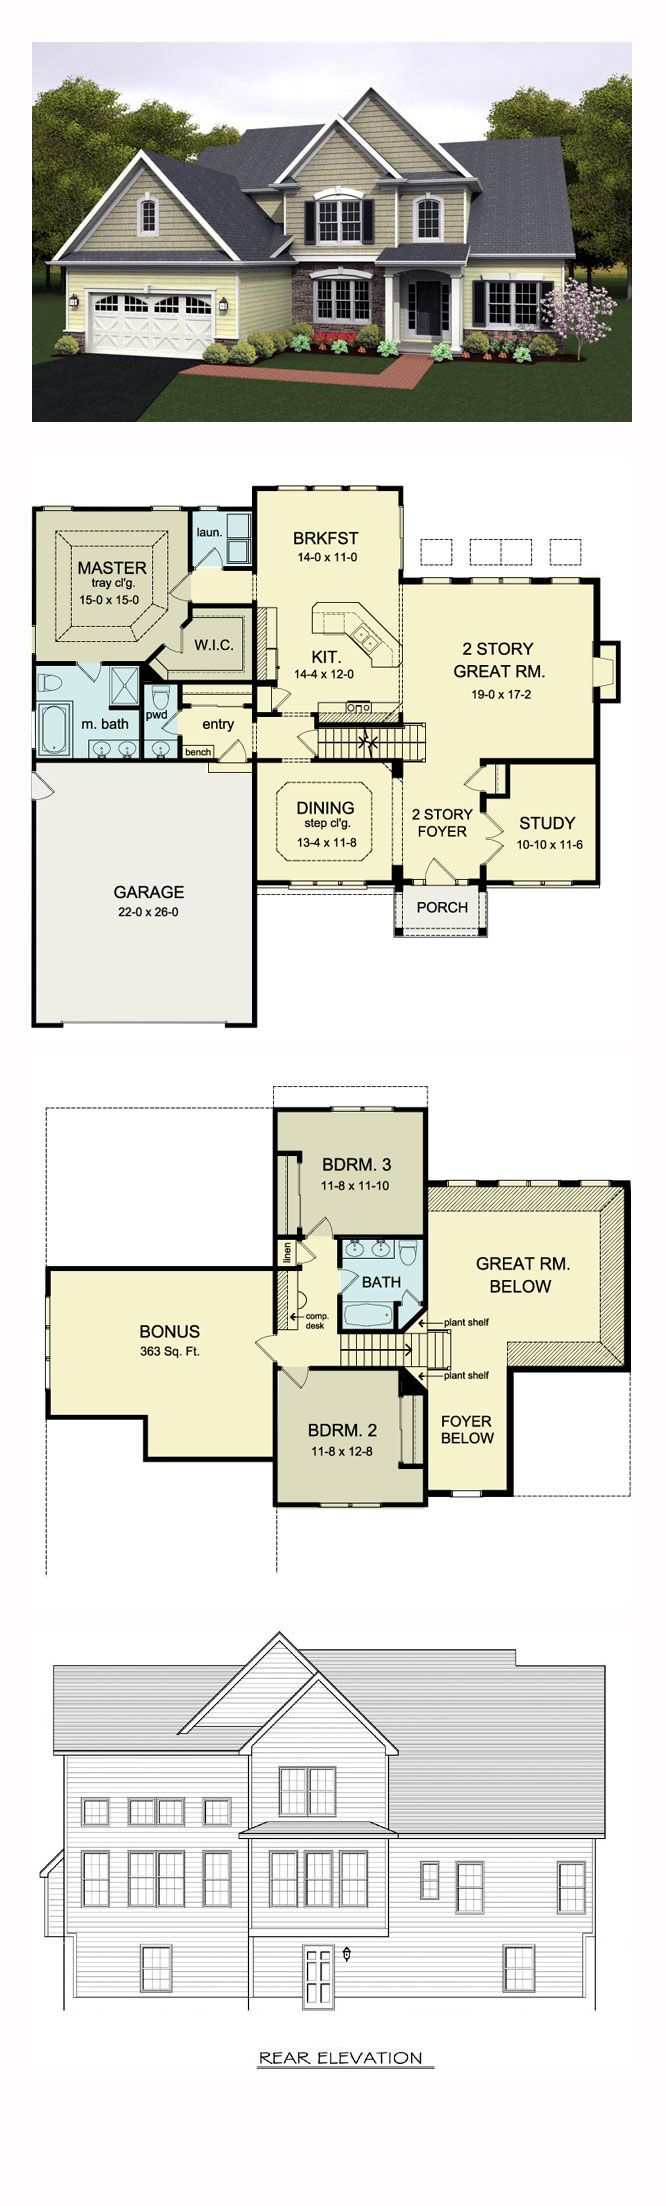 Cape Cod House Plan 54080 | Total Living Area: 2256 sq. ft., 3 bedrooms and 2.5 bathrooms. #capecodhome